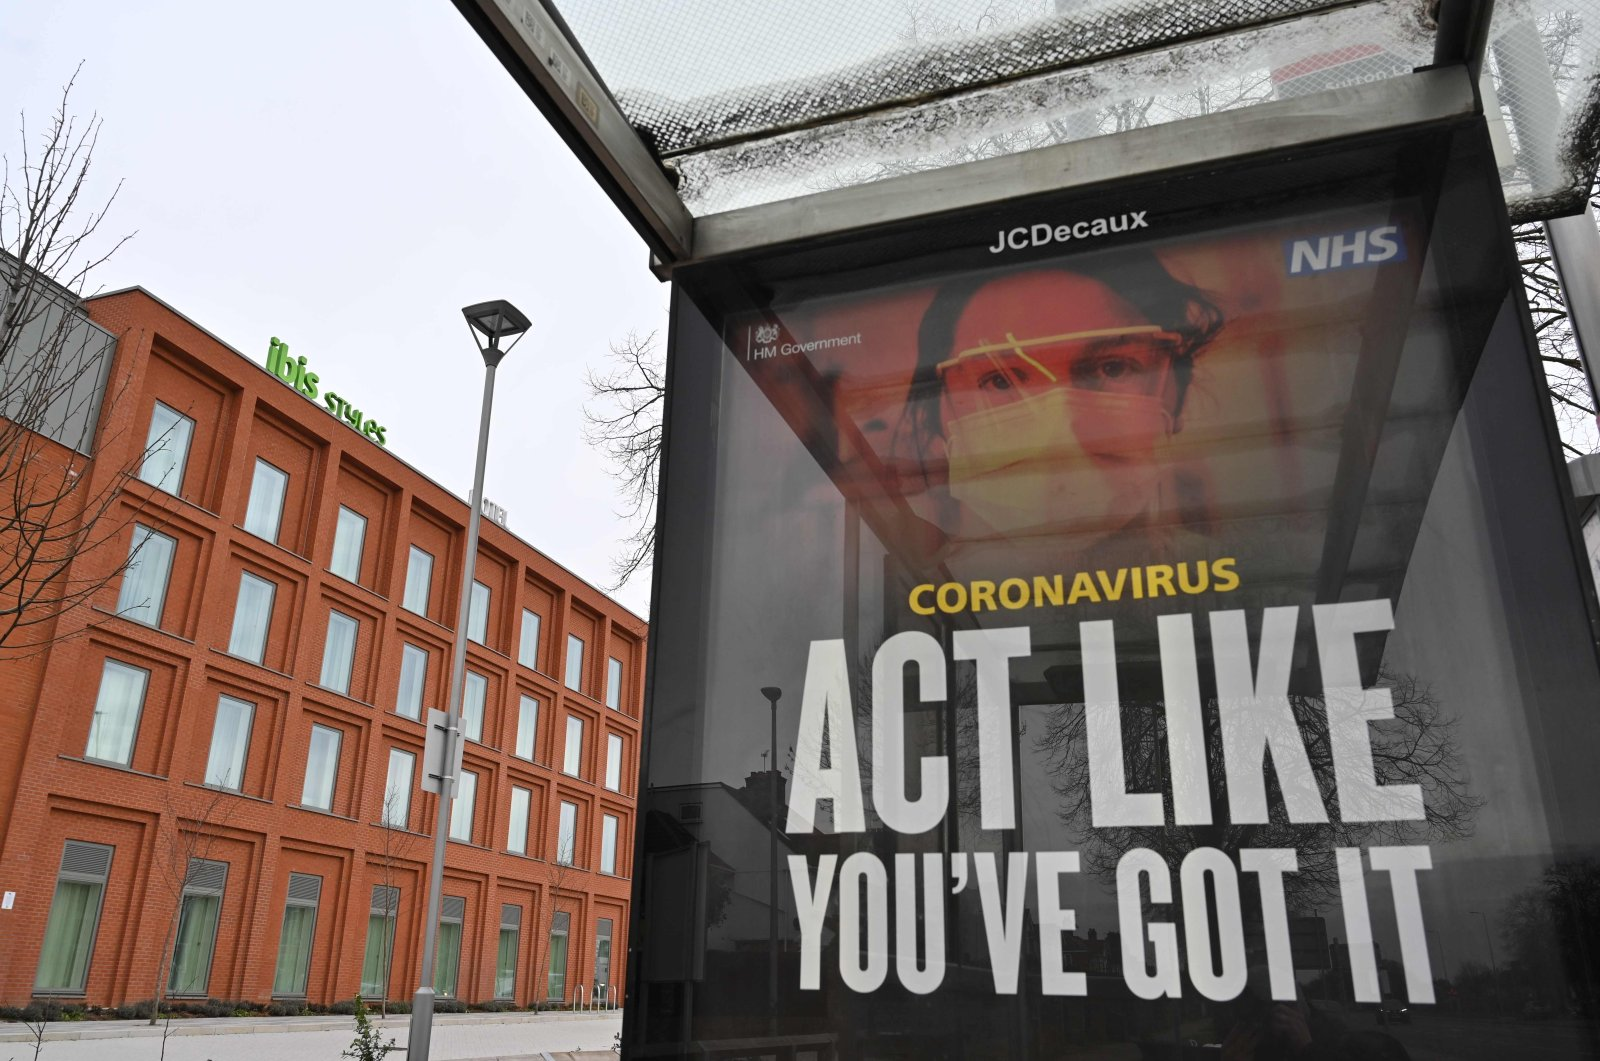 An NHS advertisement in front of an Ibis Styles hotel near London Heathrow Airport in west London, England, Feb. 14, 2021. (AFP Photo)